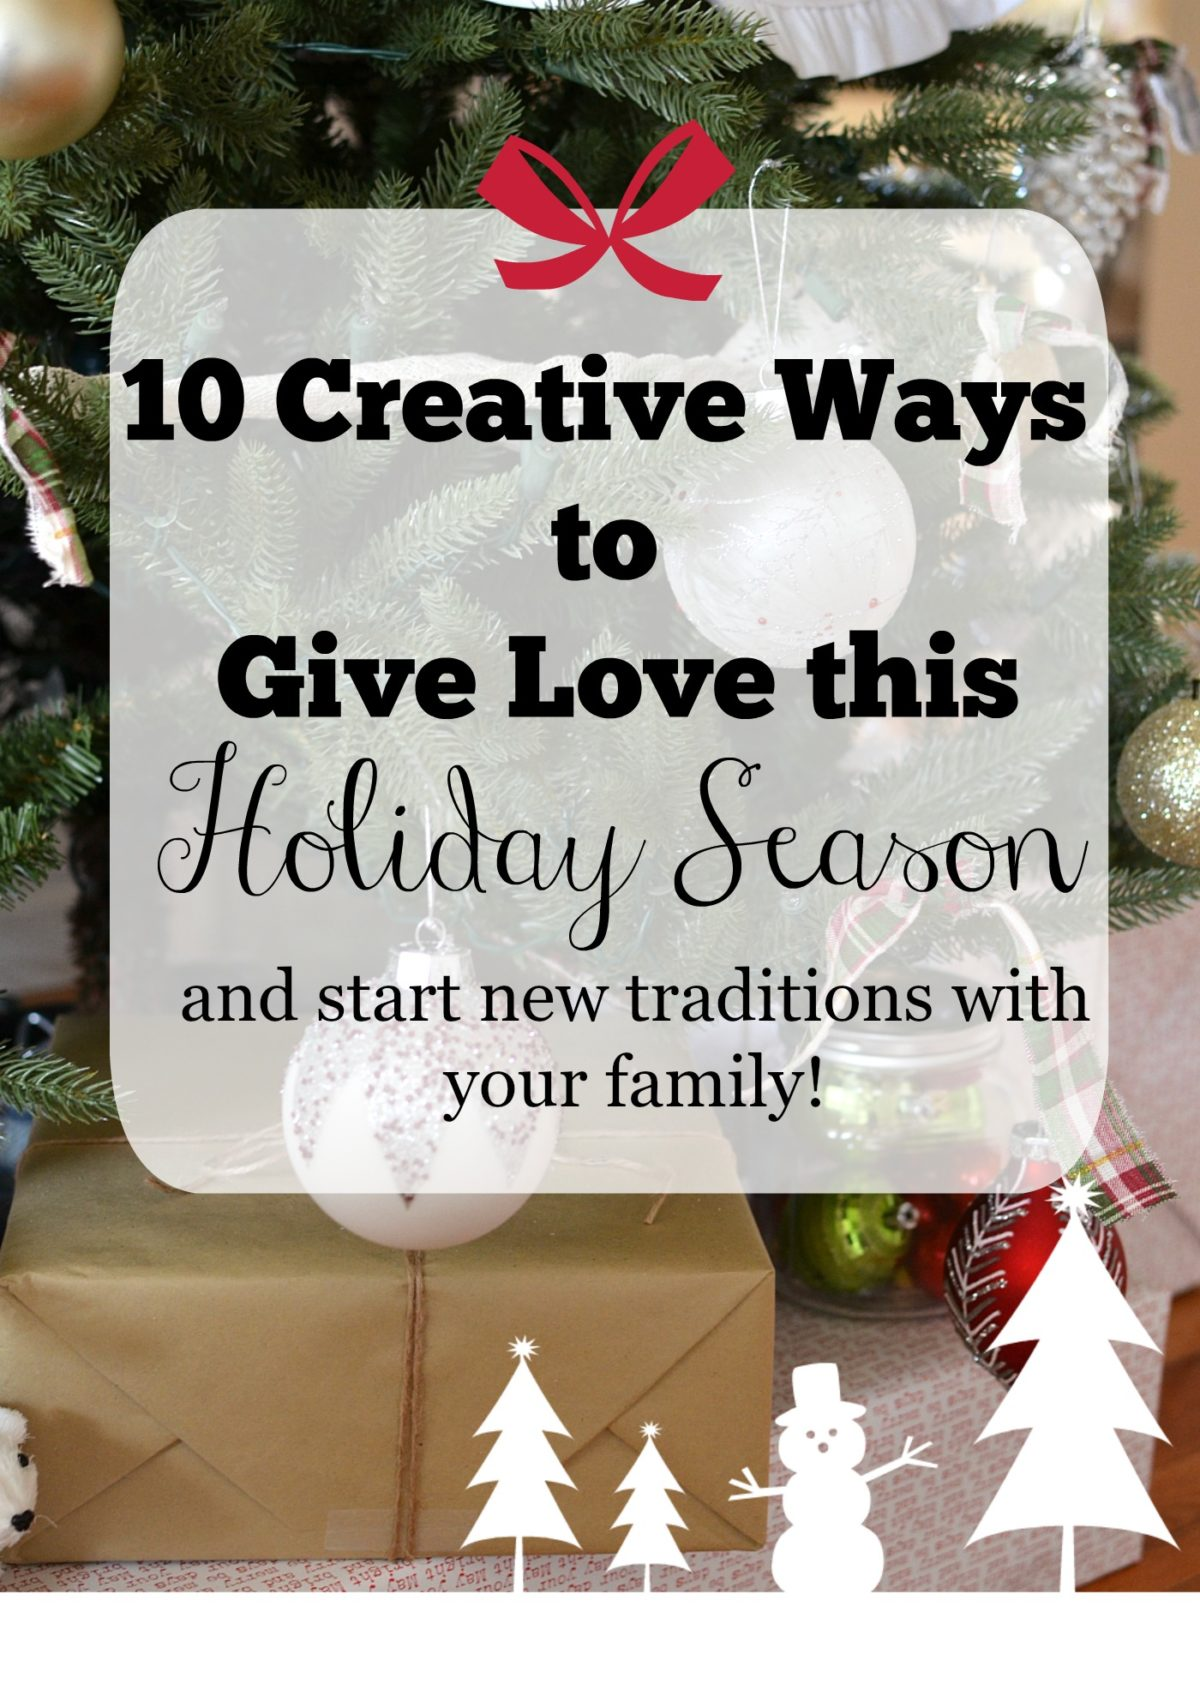 10 Ways to Give Love This Holiday Season and start new traditions with your family